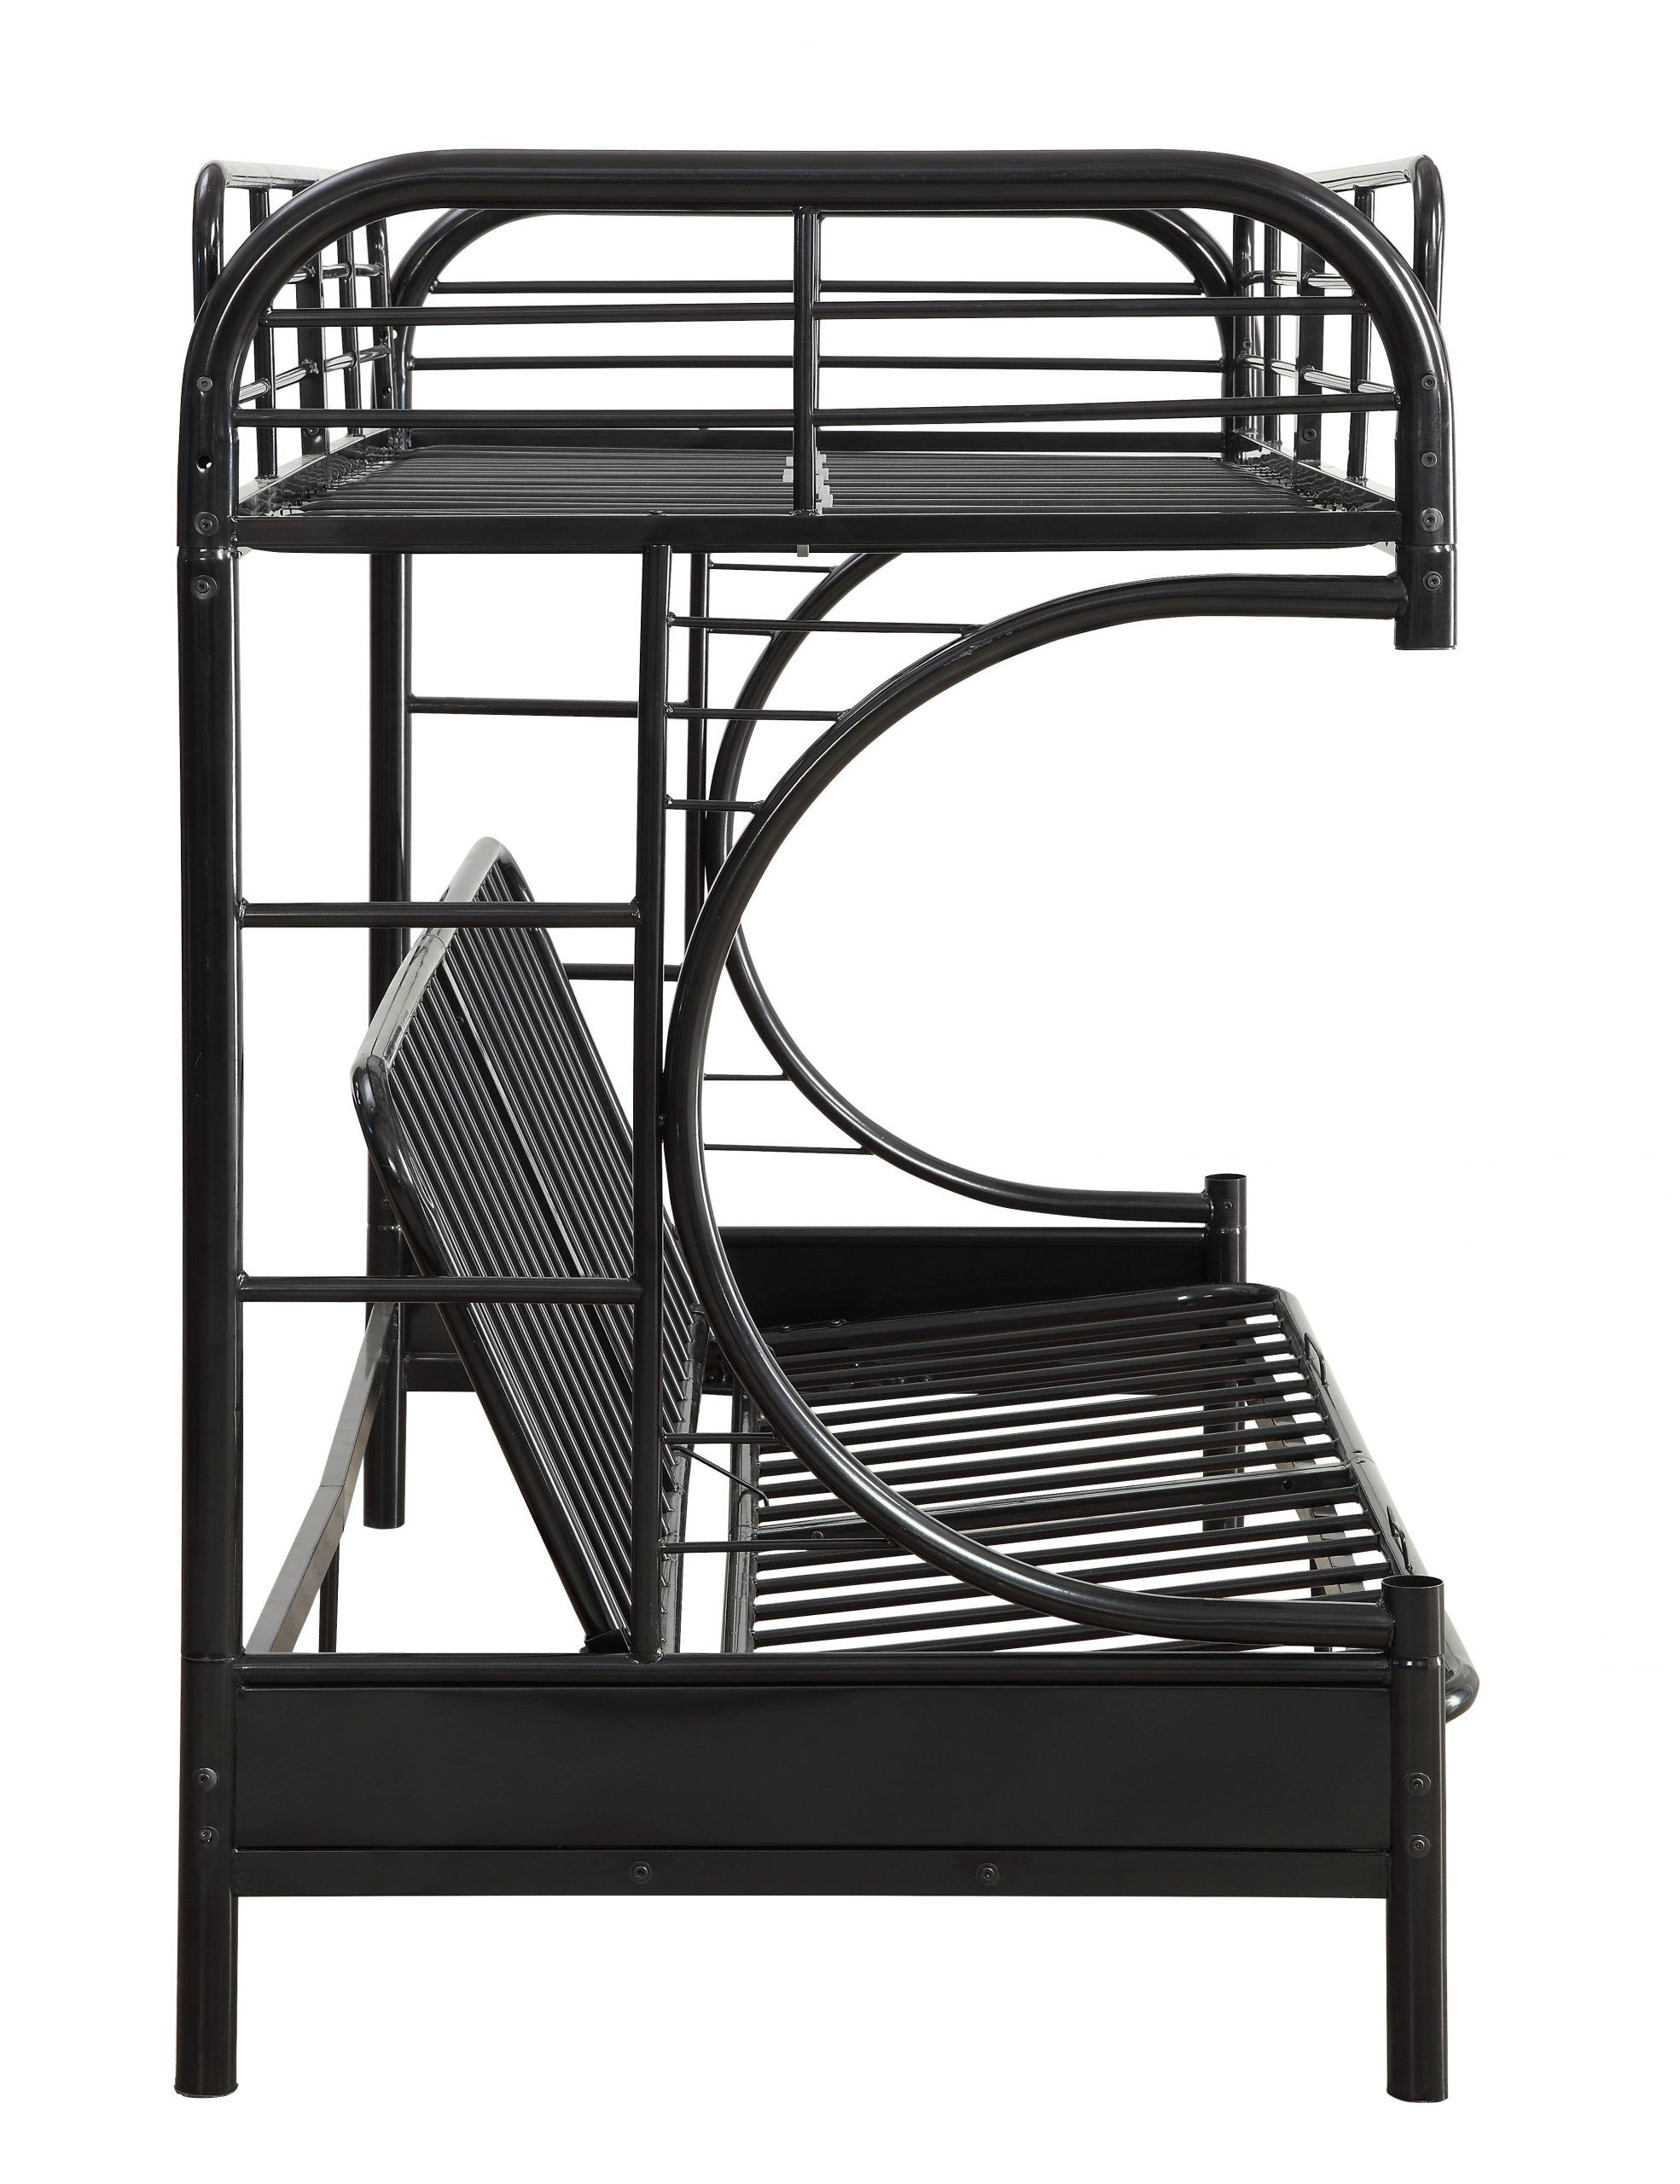 Mainstays Twin Over Full Bunk Bed Assembly Instructions 2020 Bunk Beds Futon Bunk Bed Full Bunk Beds